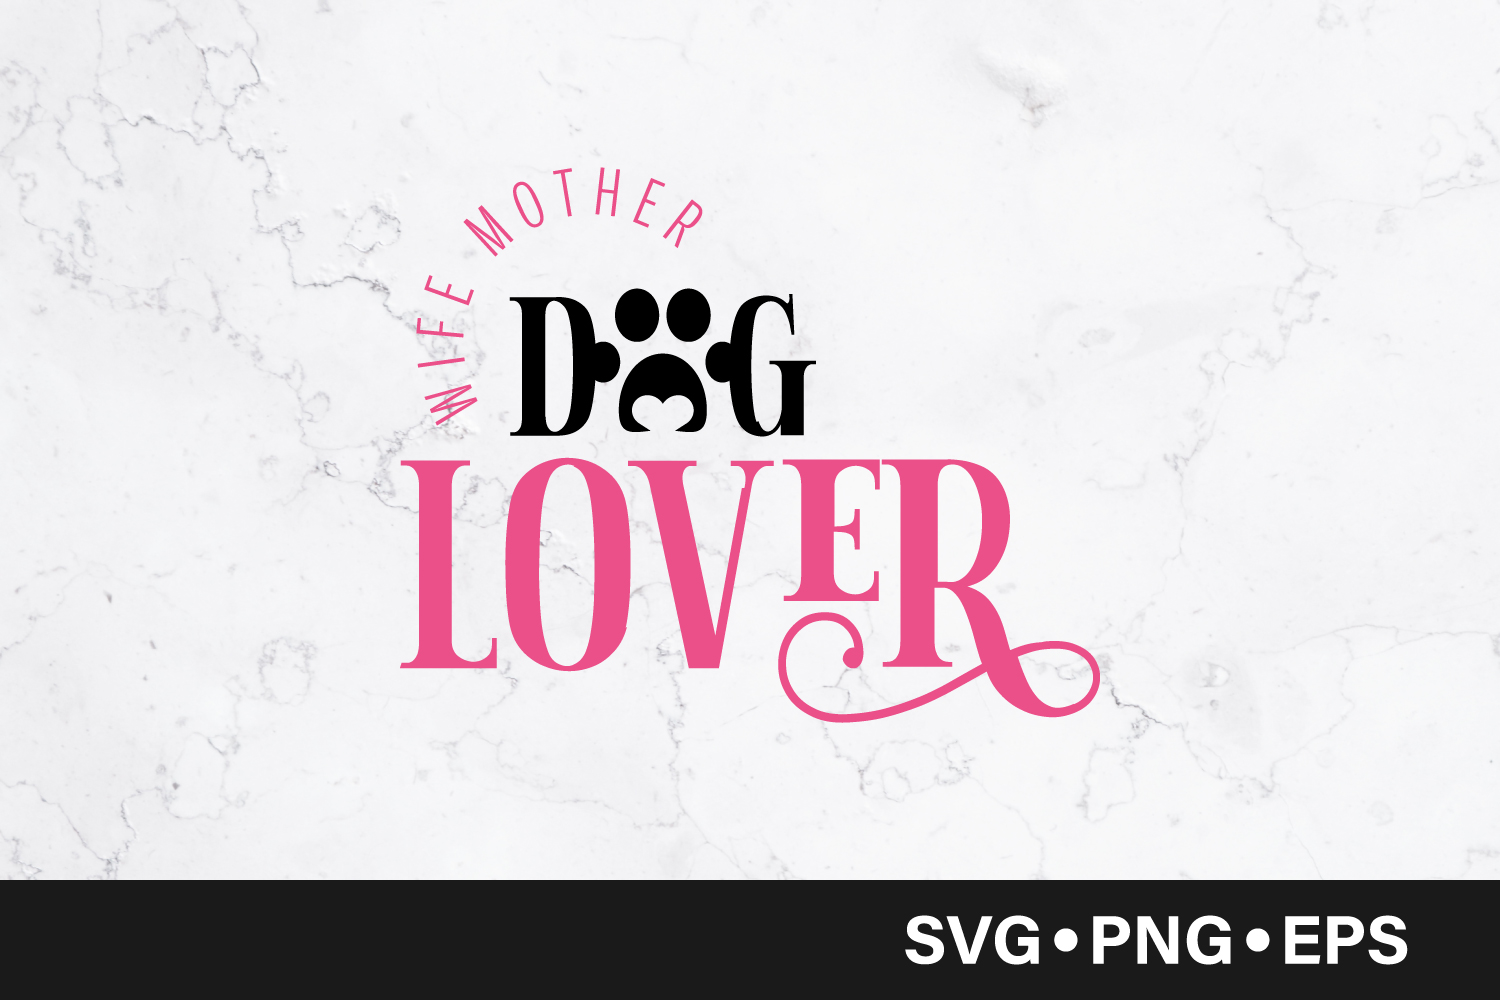 Download Free Wife Mother Dog Lover Quote Svg Graphic By Vectorbundles Creative Fabrica for Cricut Explore, Silhouette and other cutting machines.